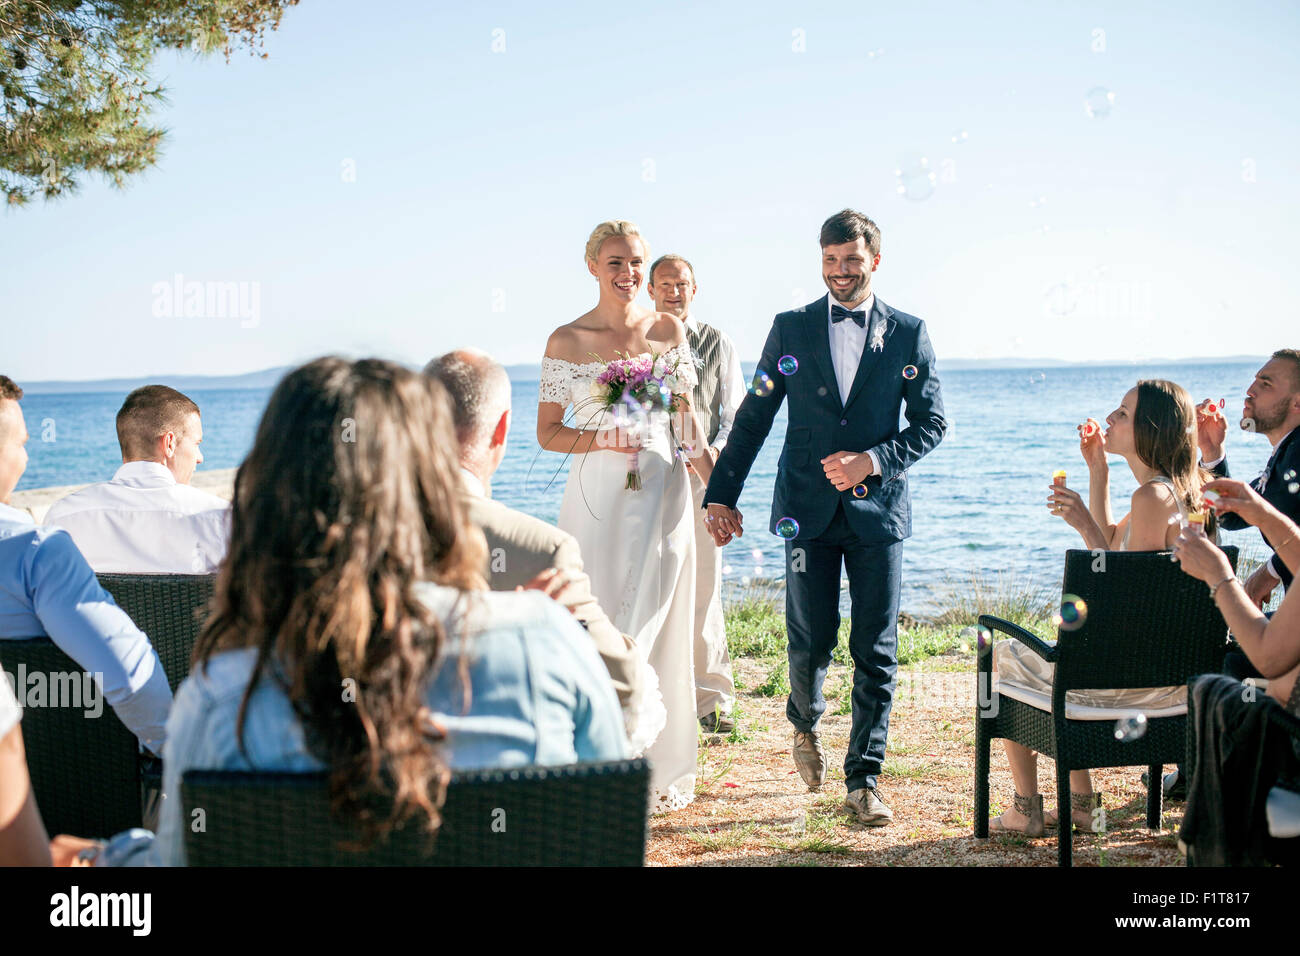 Bride and groom at wedding ceremony on beach - Stock Image